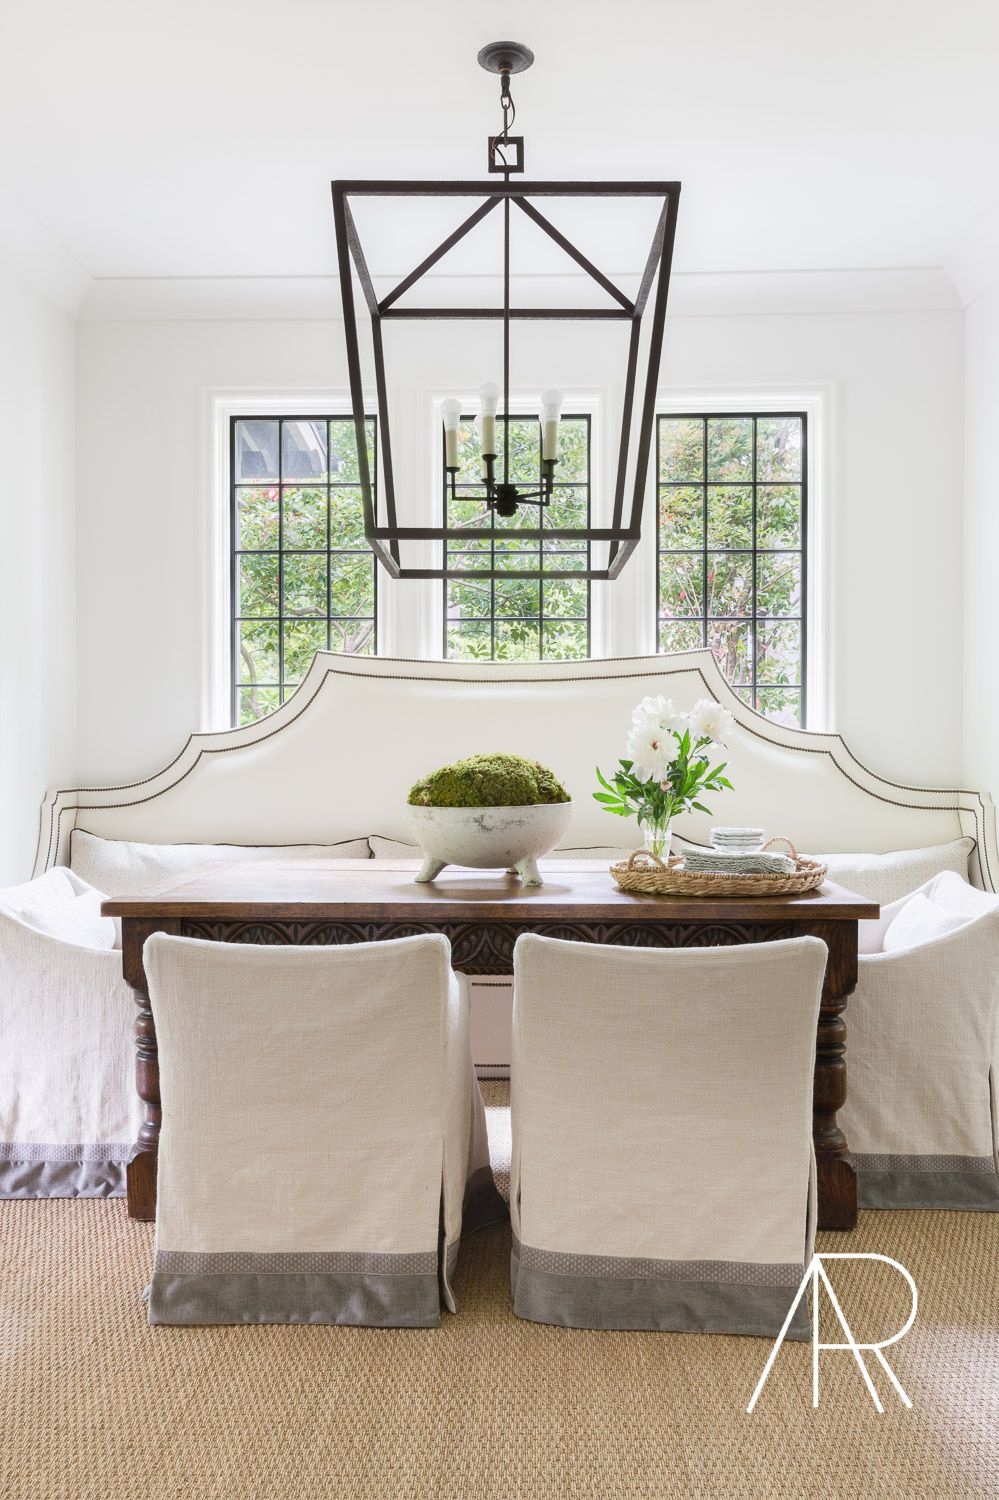 Southern Home Magazine with Laurel Powell | Southern, Magazines and ...